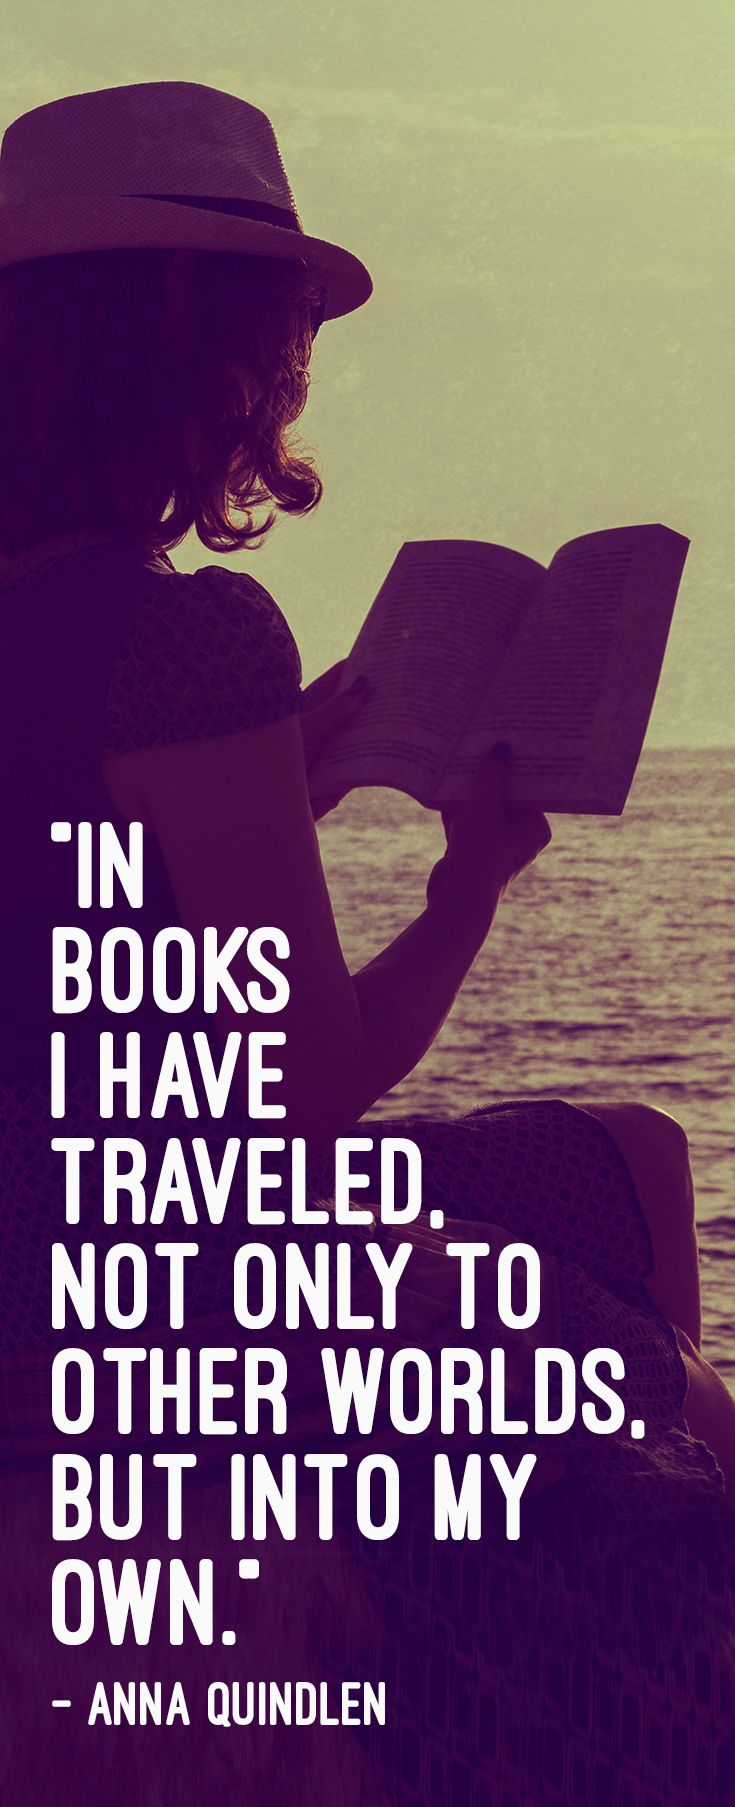 21 Bookish Quotes For A Rainy Day True That Pinterest Book